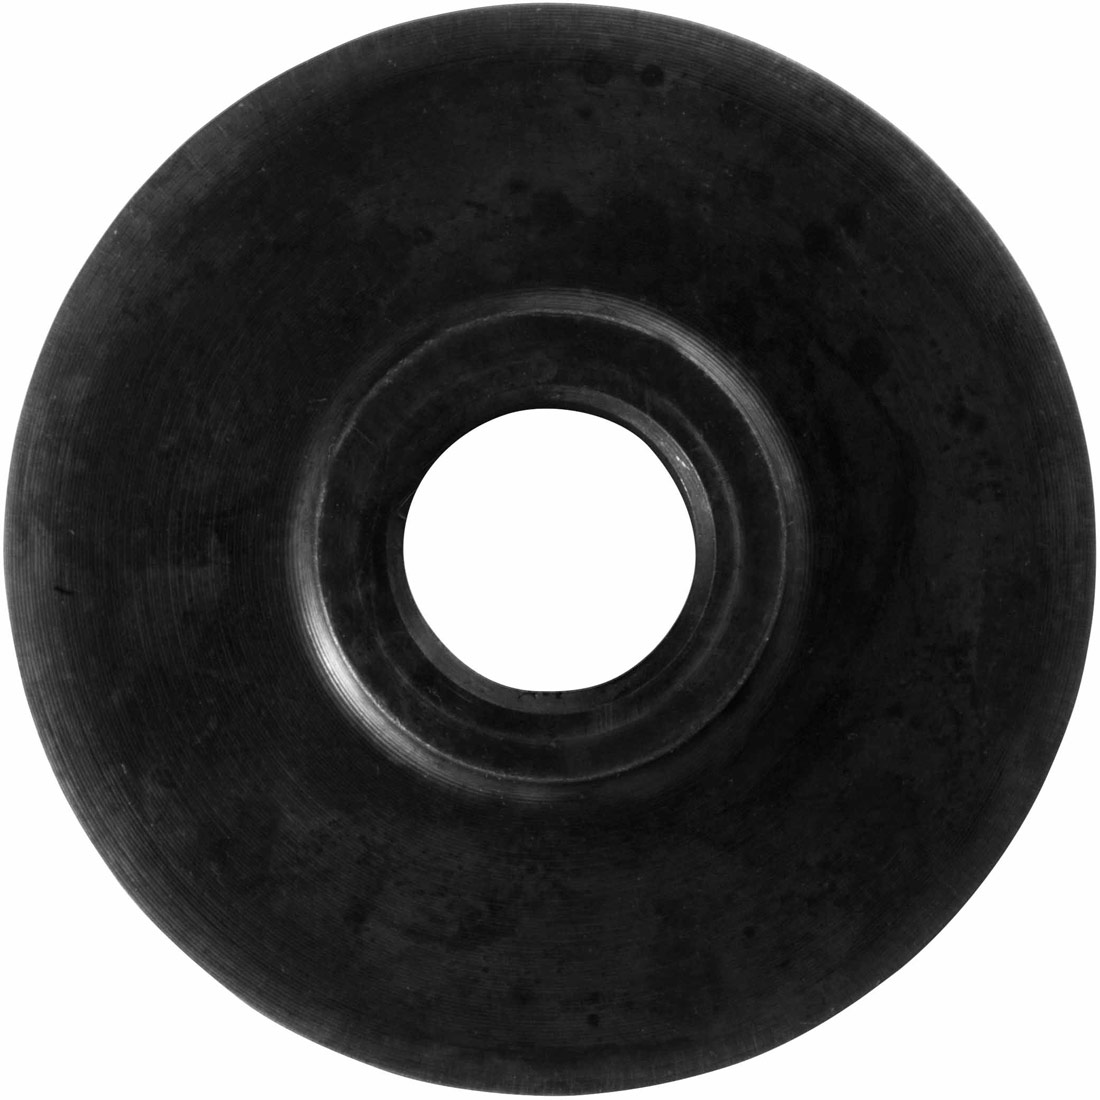 Reed 3040 Cutter Wheels for Tubing Cutters Metal